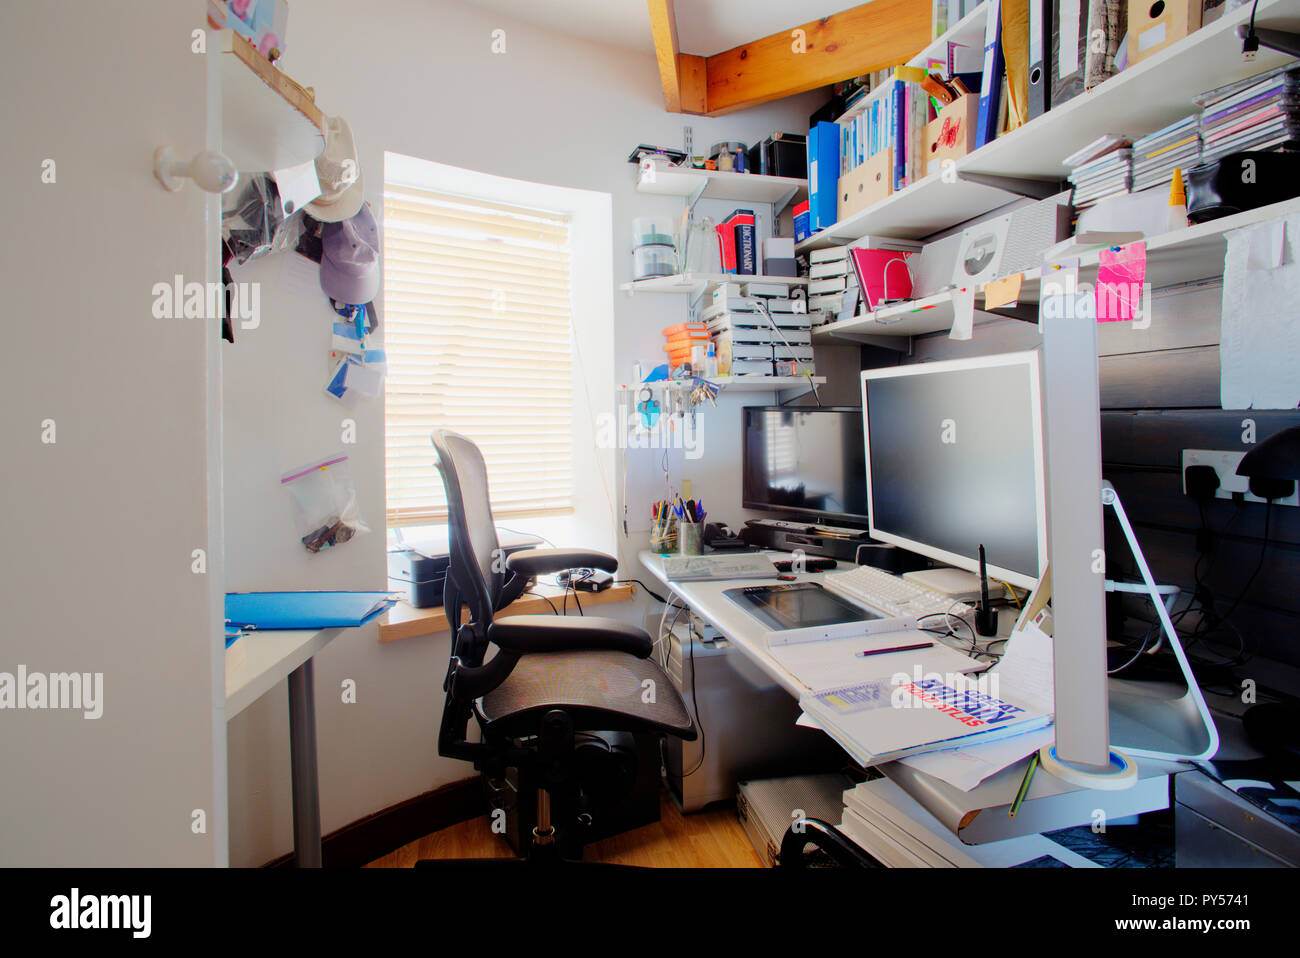 A shot of a messy desk in a home office, the room is small and cluttered, on the desk is three computer monitors and office supplies. - Stock Image